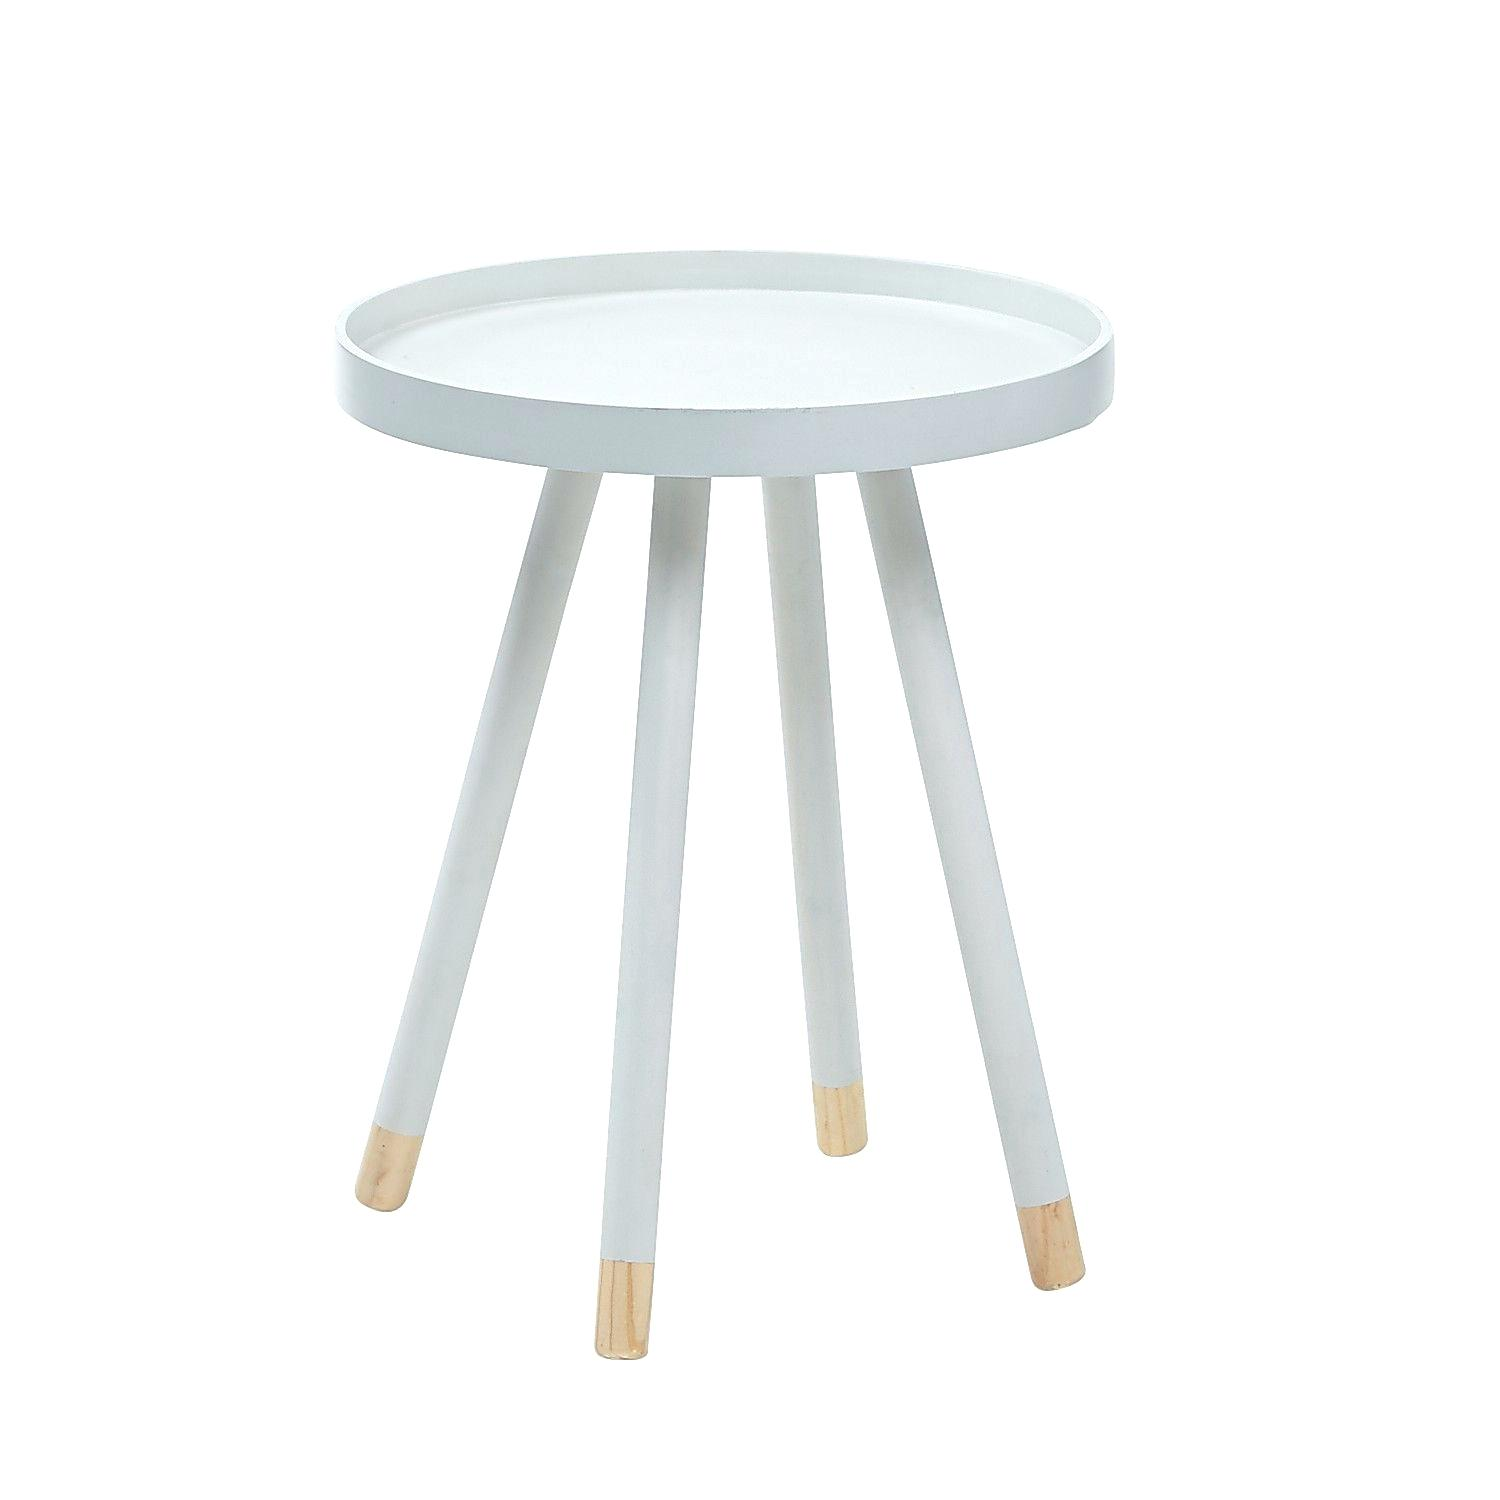 mid mod gray accent table zoom pier tables kenzie glass lamp bedside legs small green side meyda tiffany dragonfly round dining for room chair styles modern kitchen clocks west